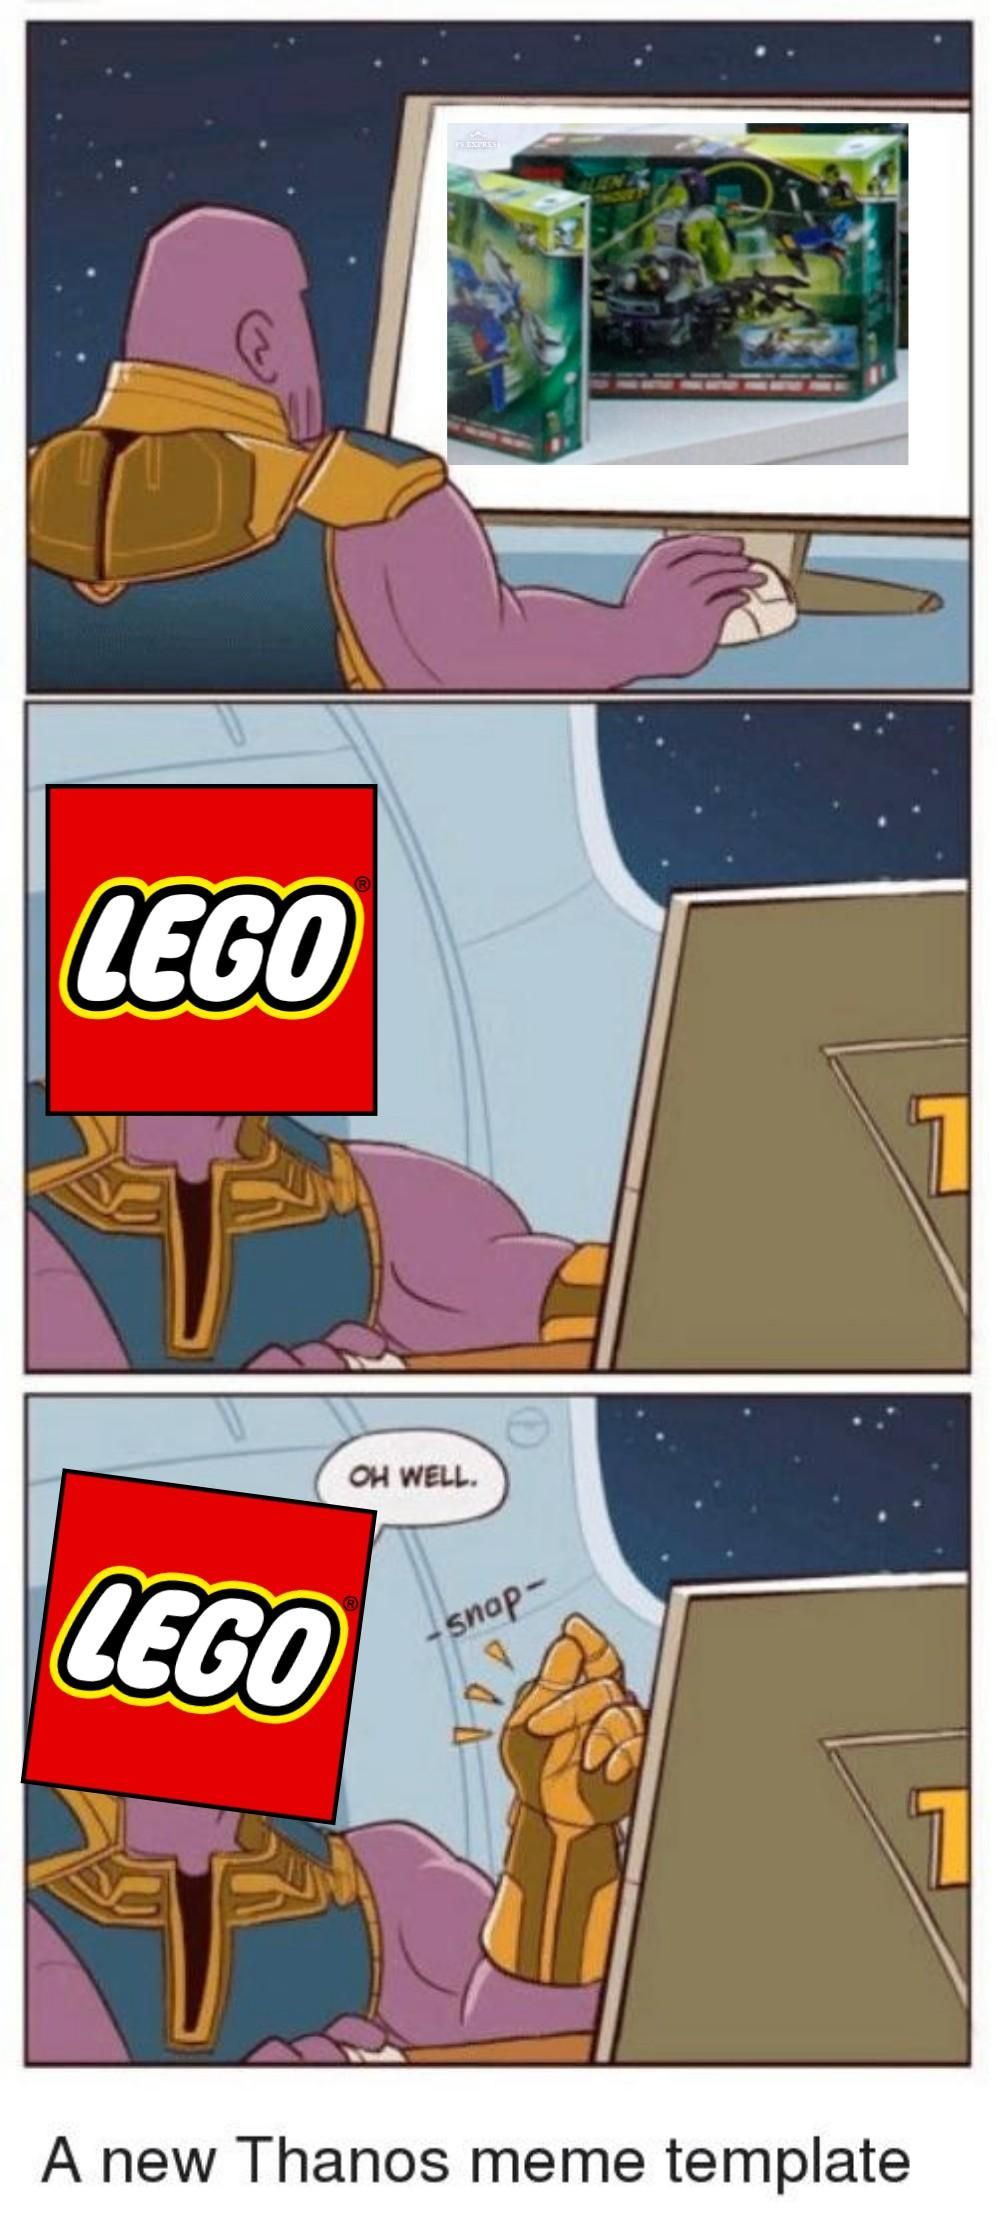 Avengers/LEGO meme with no butts just2good (With images